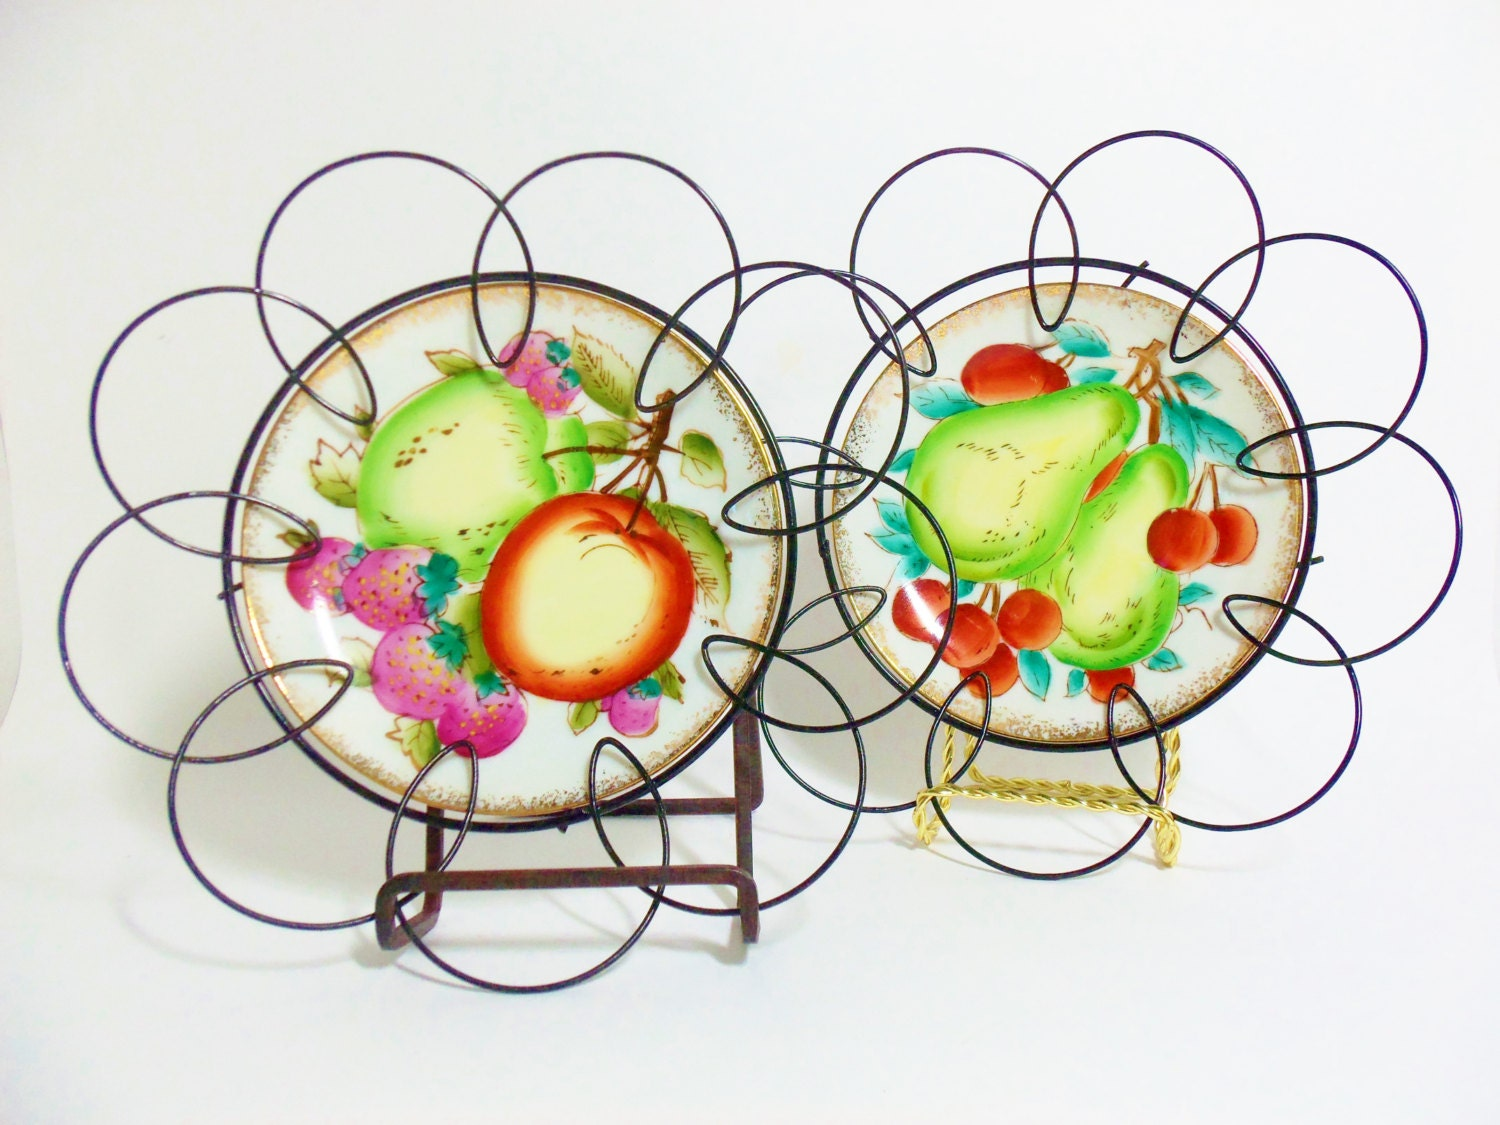 Wall Decor Kitchen Plates Fruit Design Original Scrolled Wired